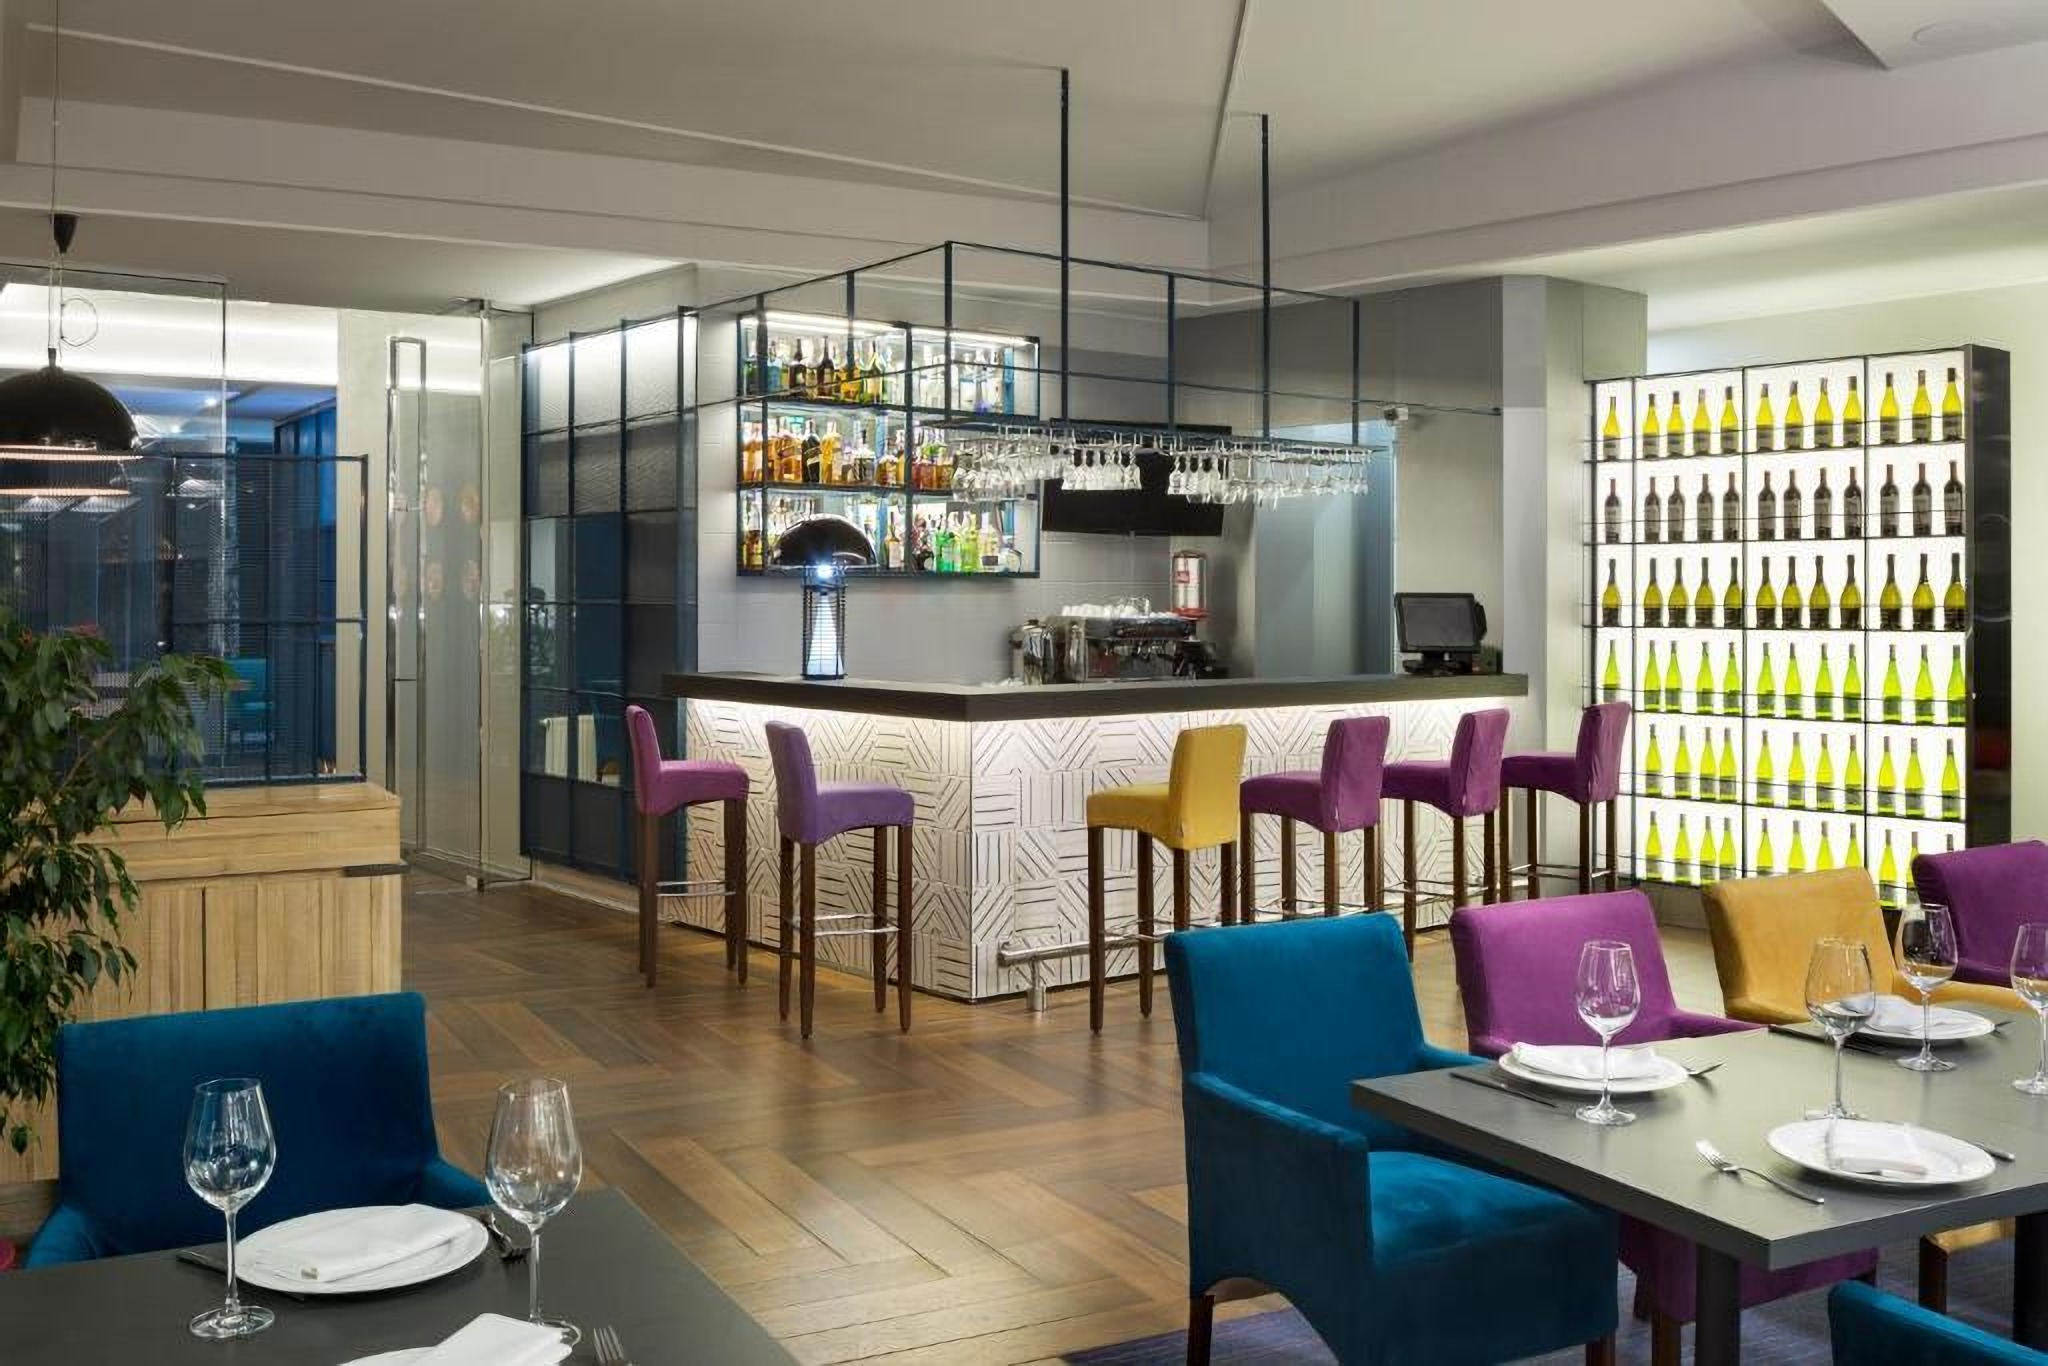 The bar at the Villa Four Rooms Hotel